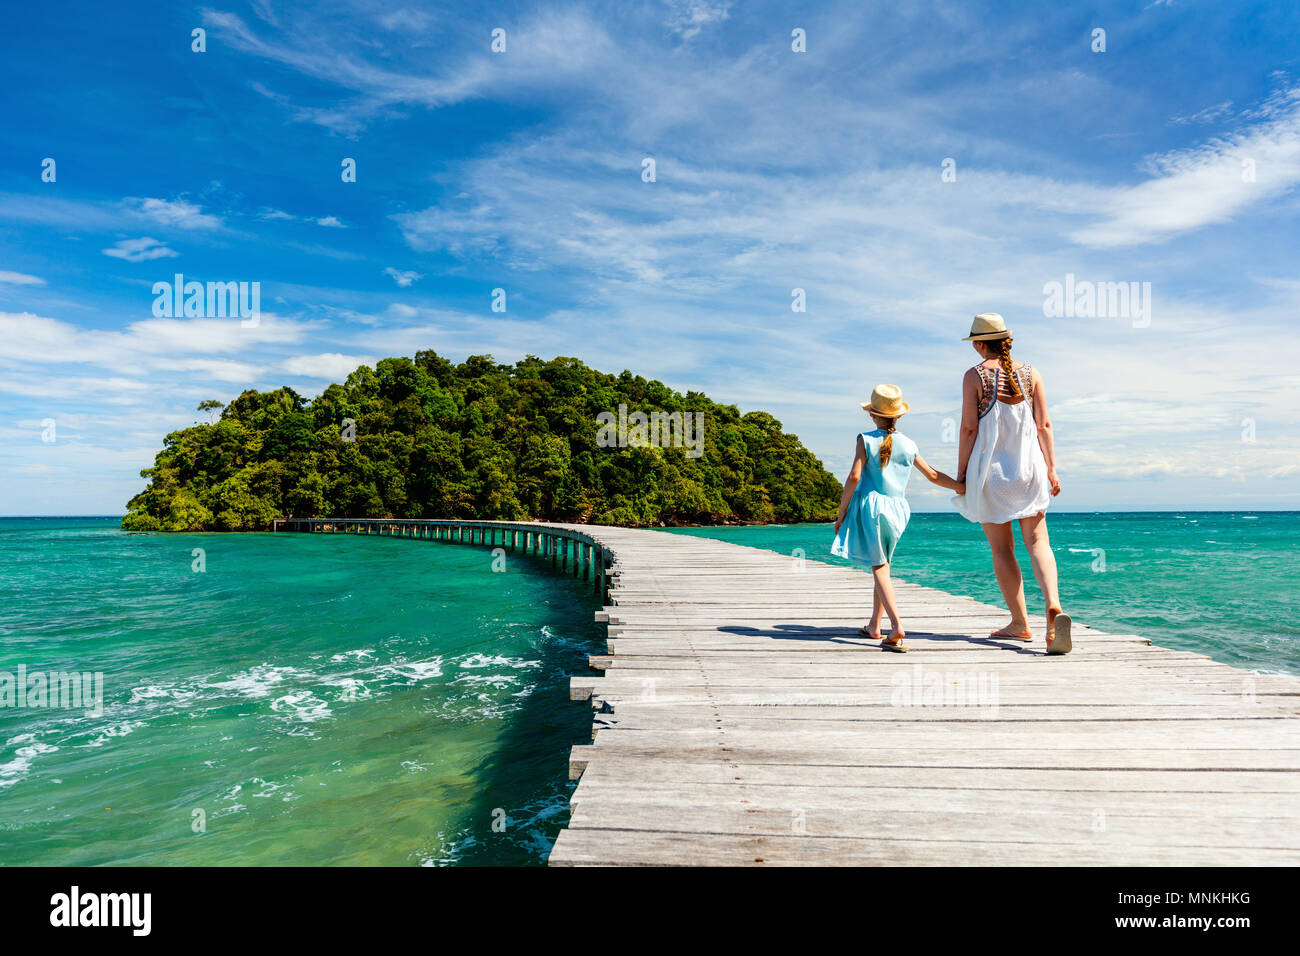 Family walking on wooden pathway leading to beautiful tropical island in Cambodia - Stock Image